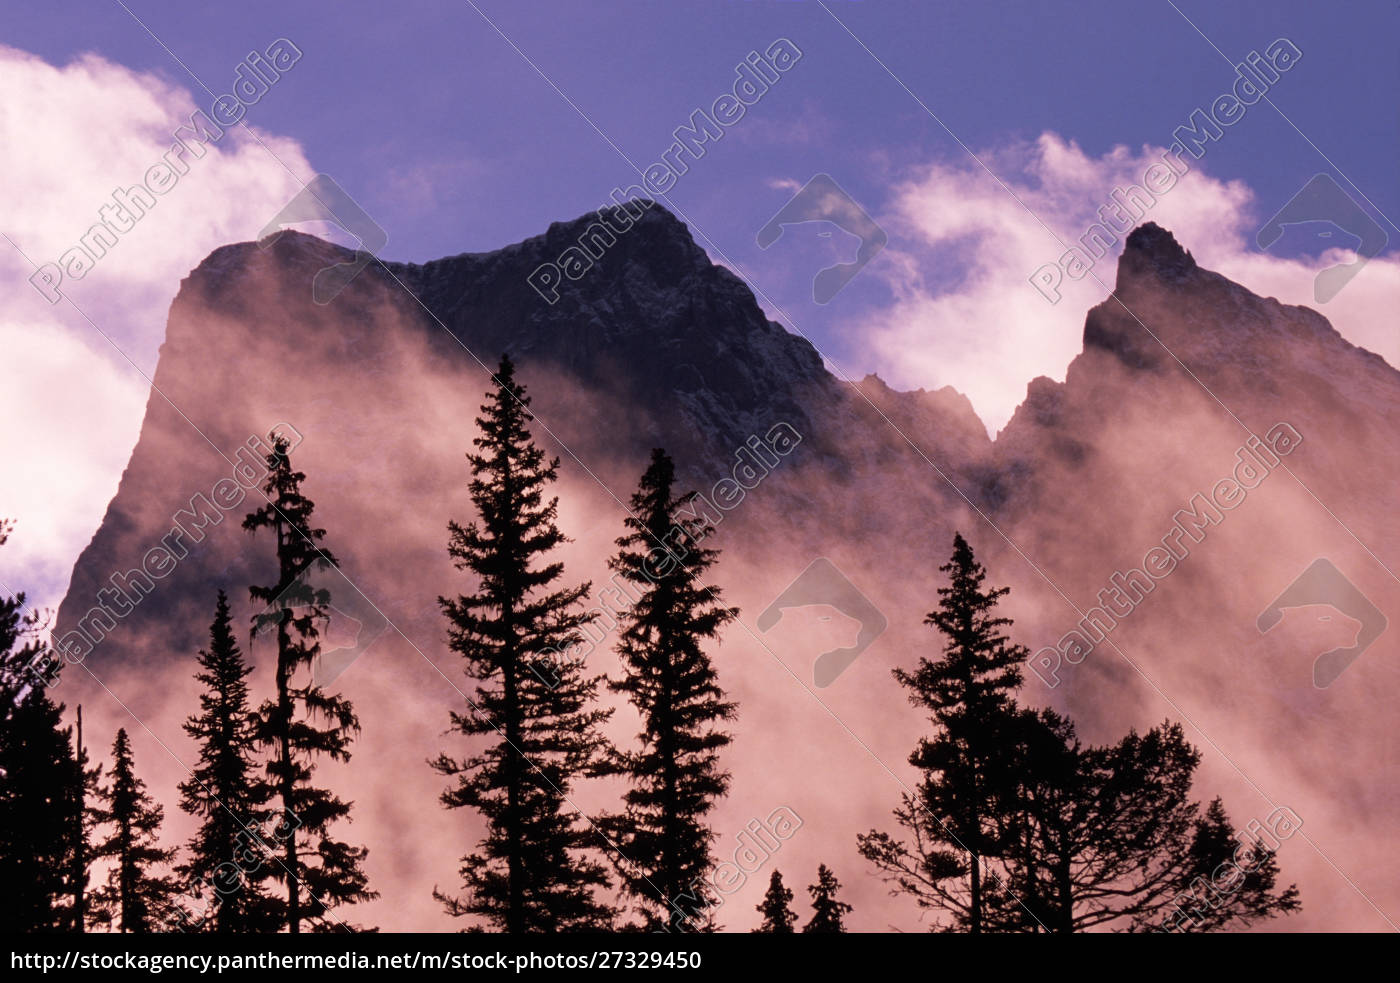 trees, silhouetted, against, mist, and, mountains - 27329450